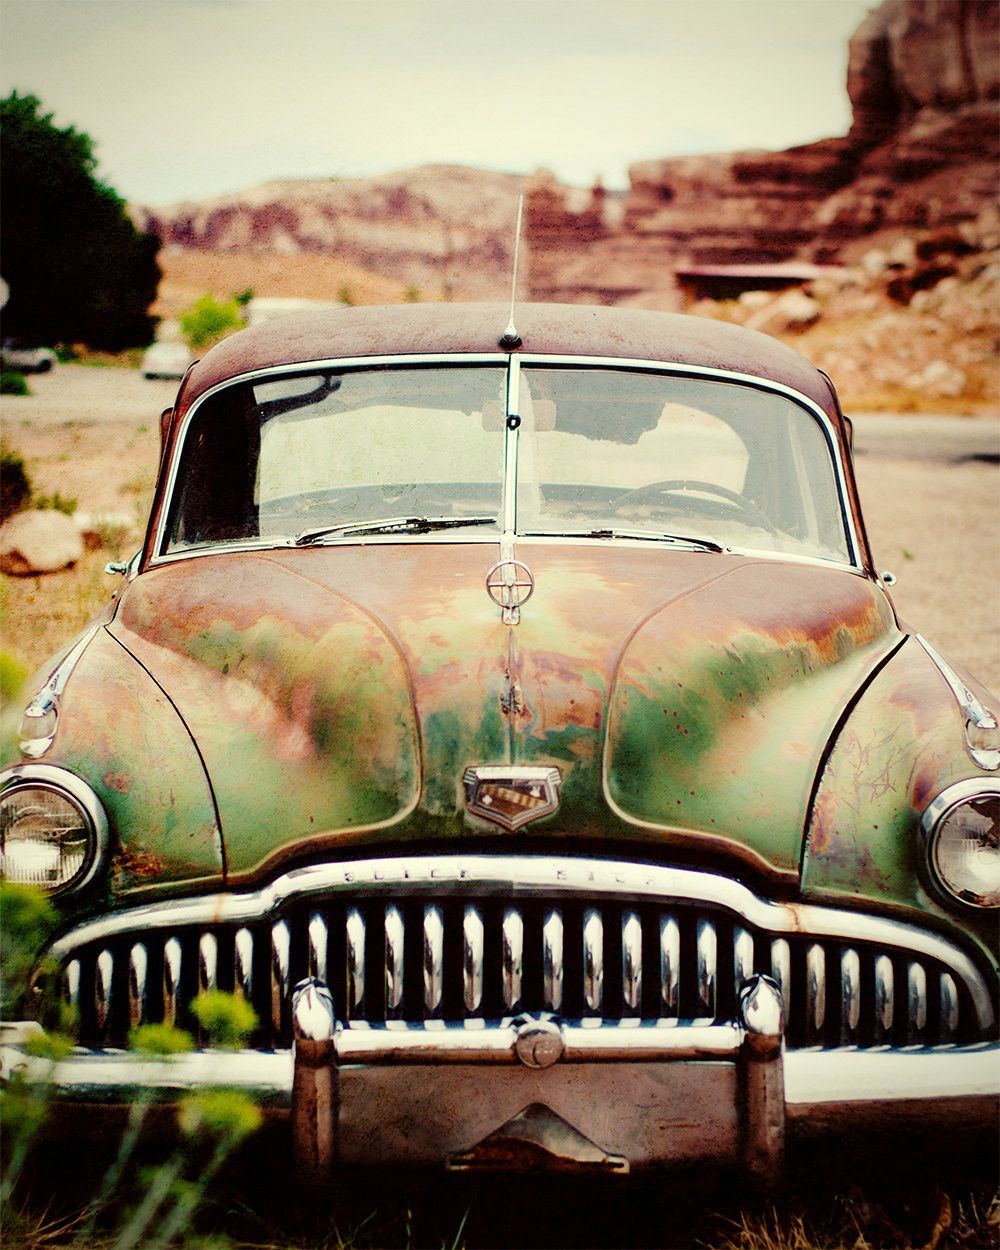 Utah Desert Buick Vintage Car Photography Cars And Products - Buick utah